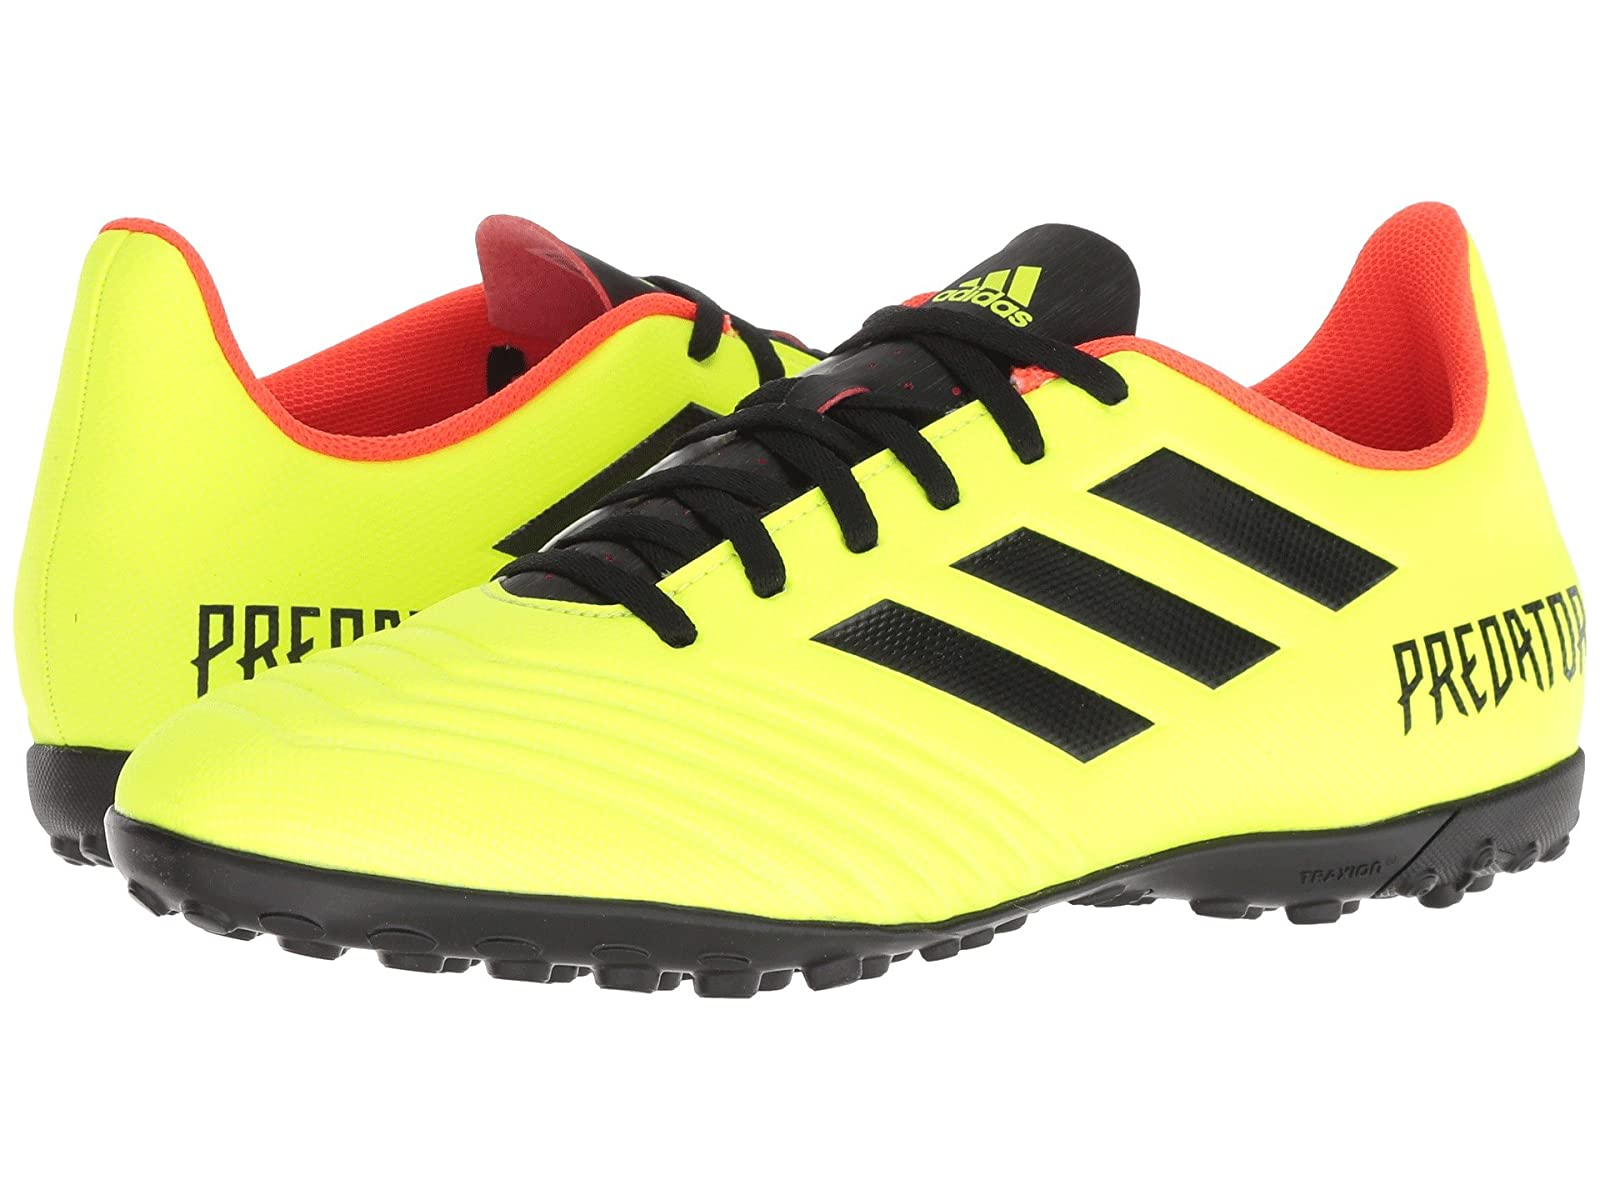 adidas Predator Tango 18.4 TF World Cup PackAtmospheric grades have affordable shoes